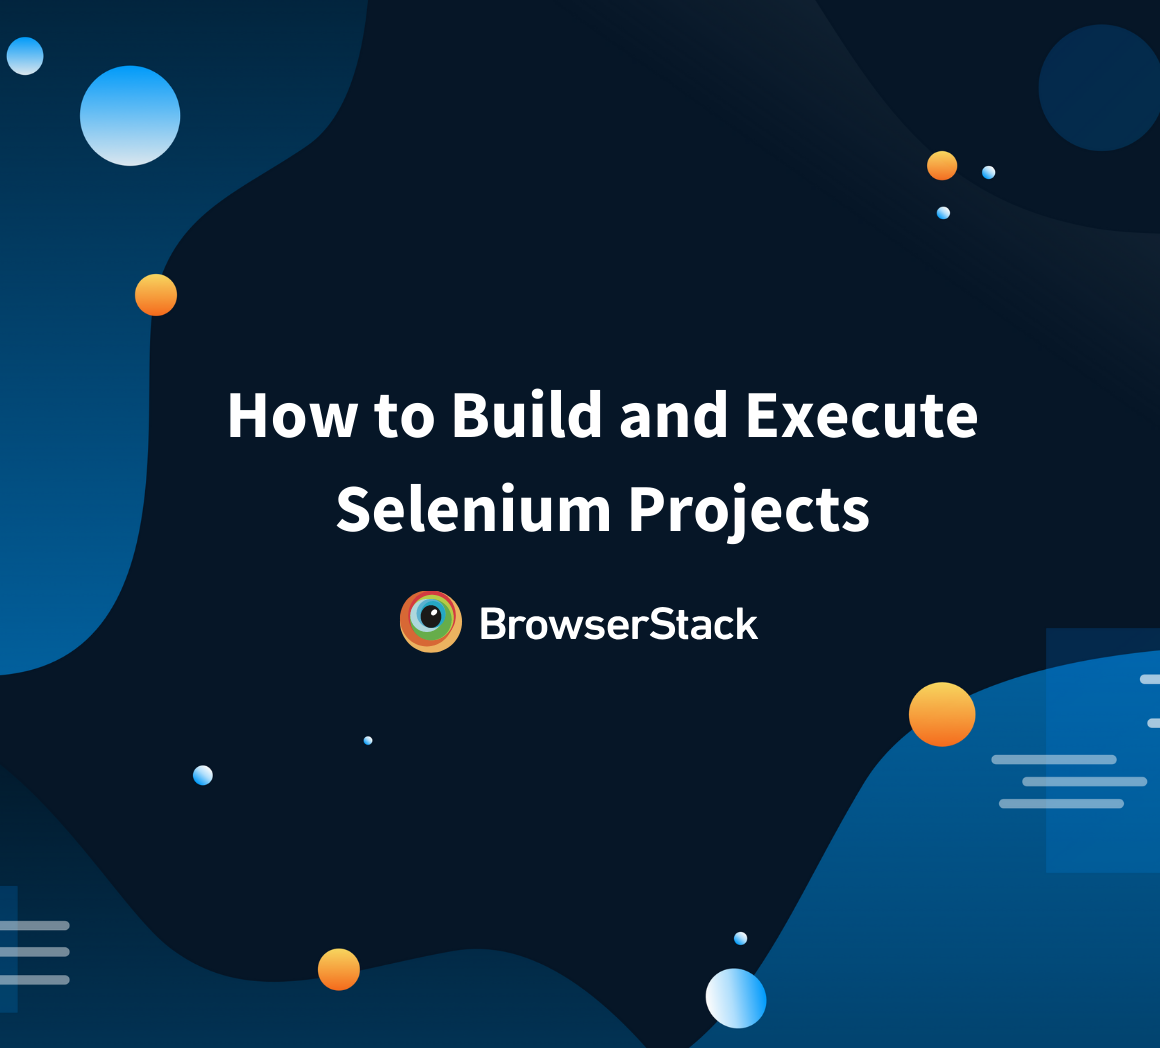 How to build and execute Selenium projects